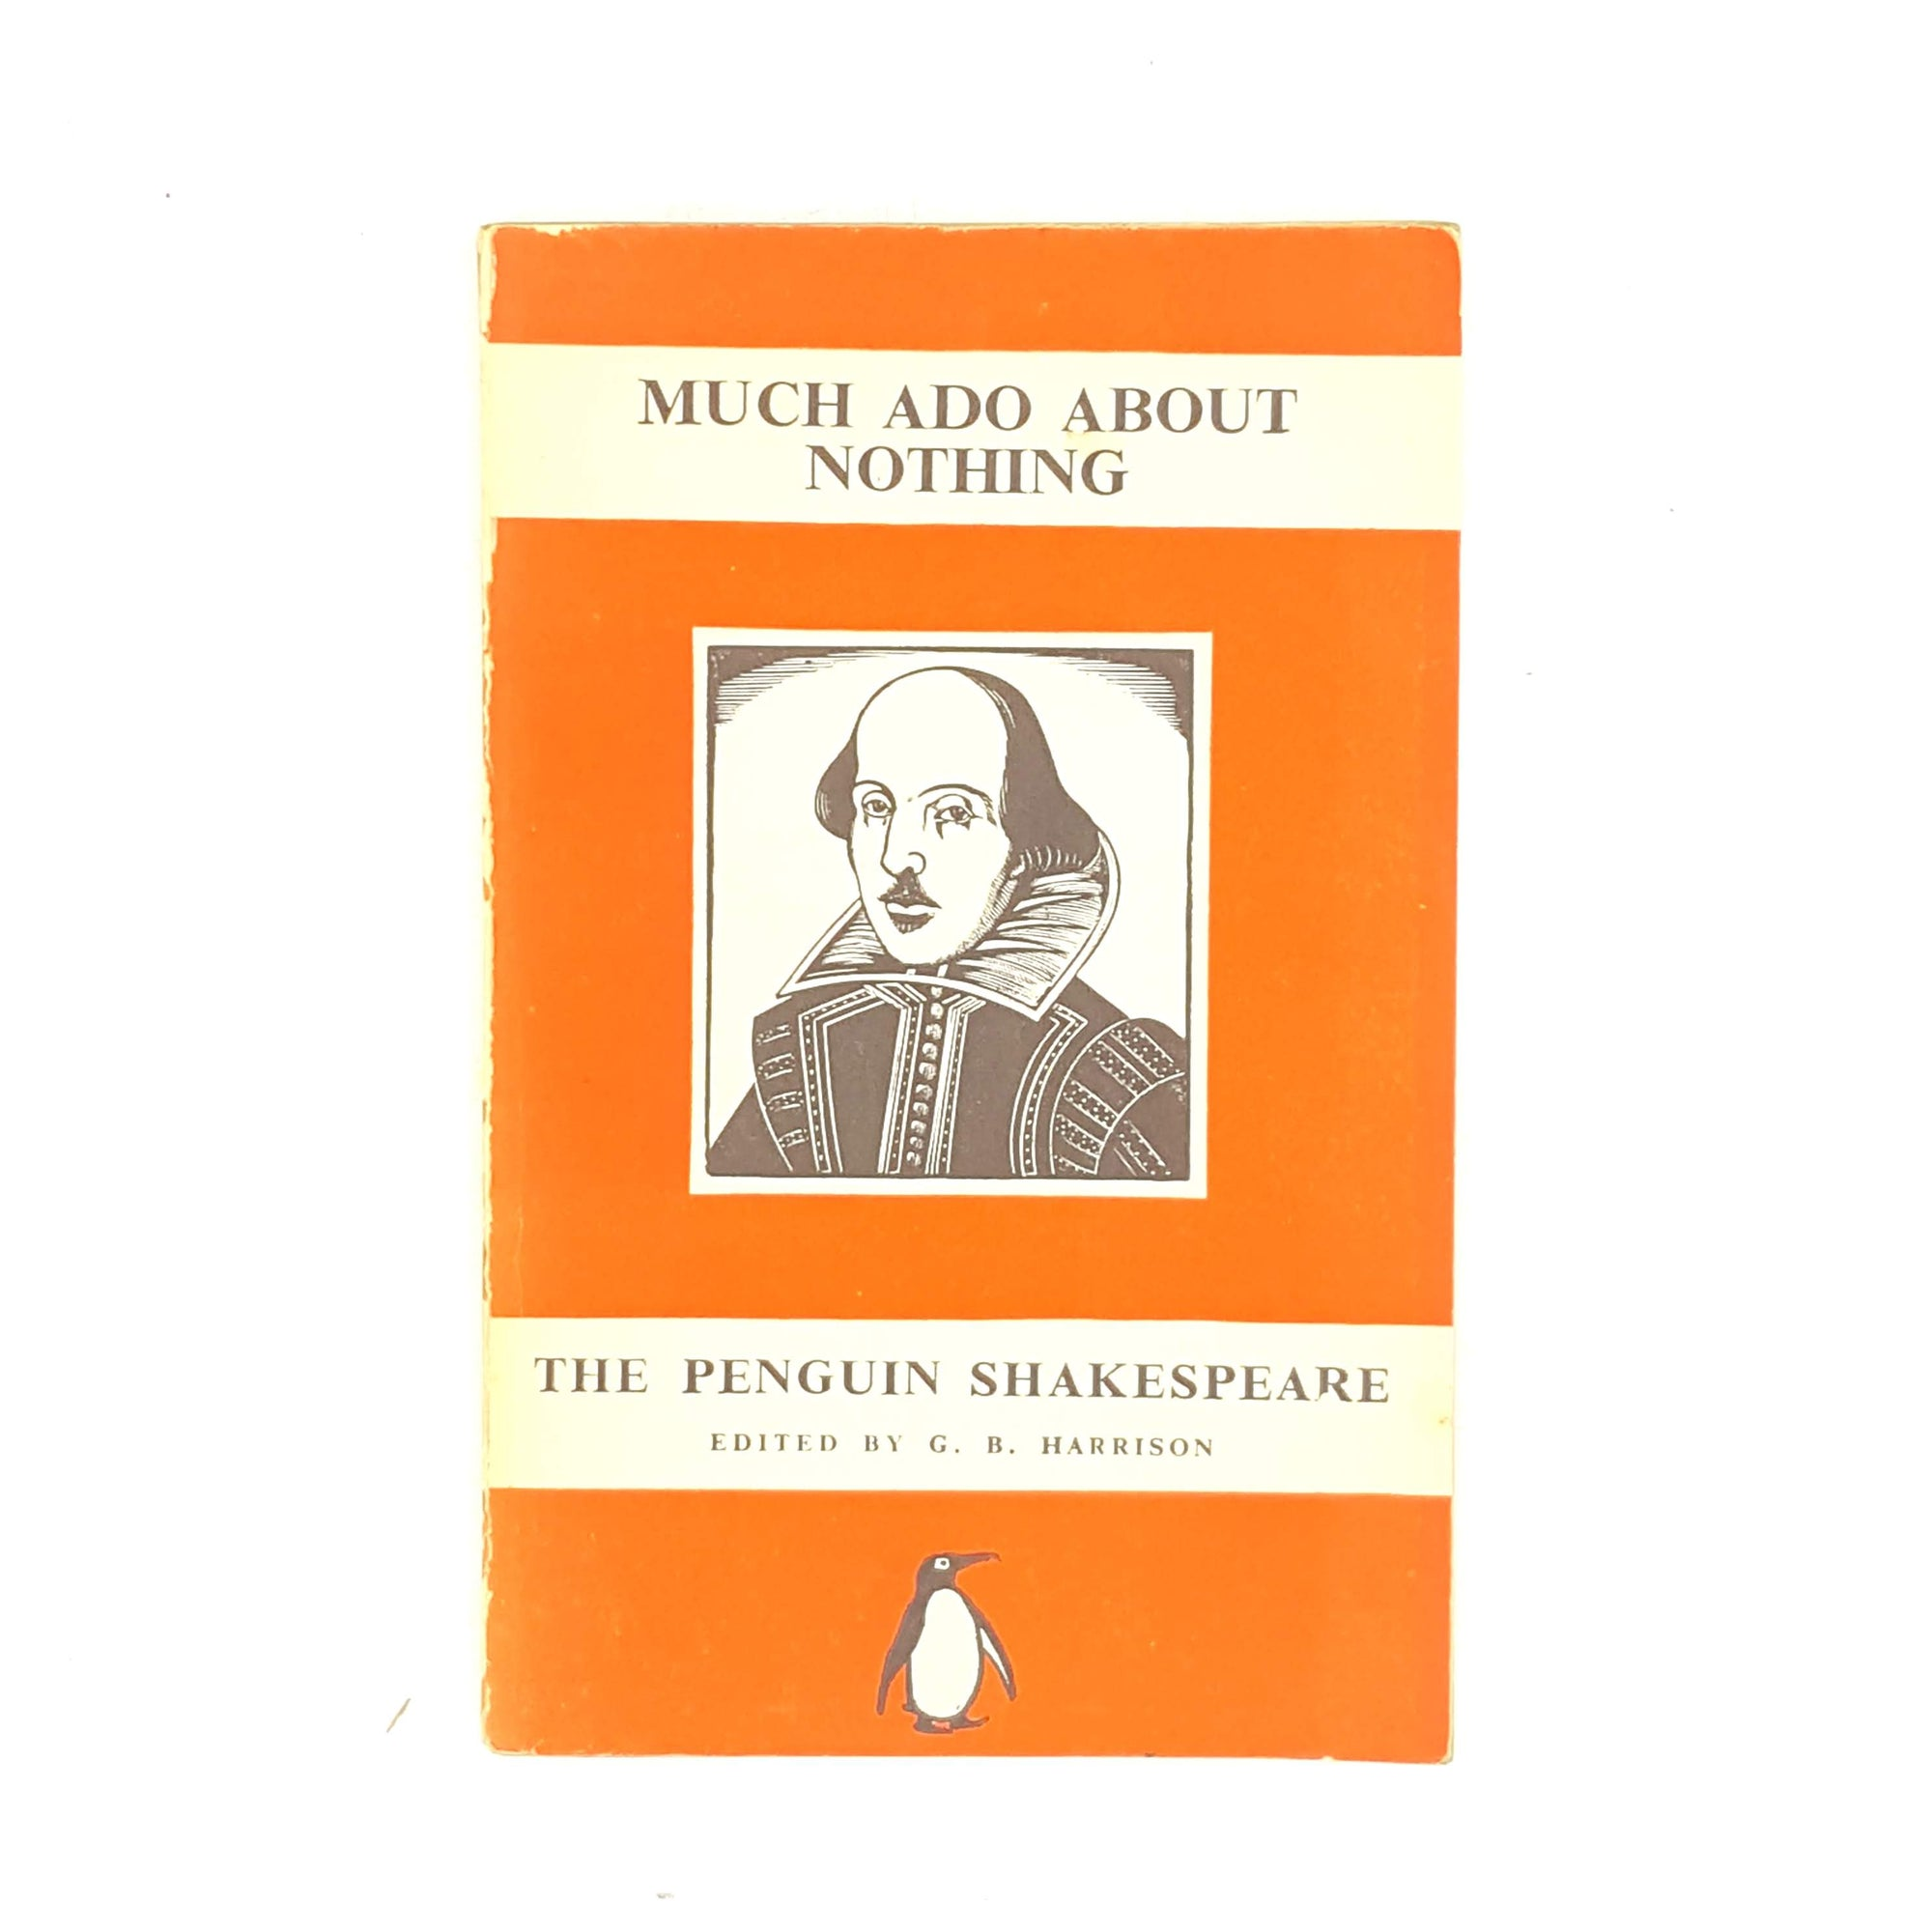 country-house-library-shakespeare-writing-red-poetry-old-1930-plays-prose-much-ado-about-nothing-shakespeare-week-england-thrift-books-penguin-